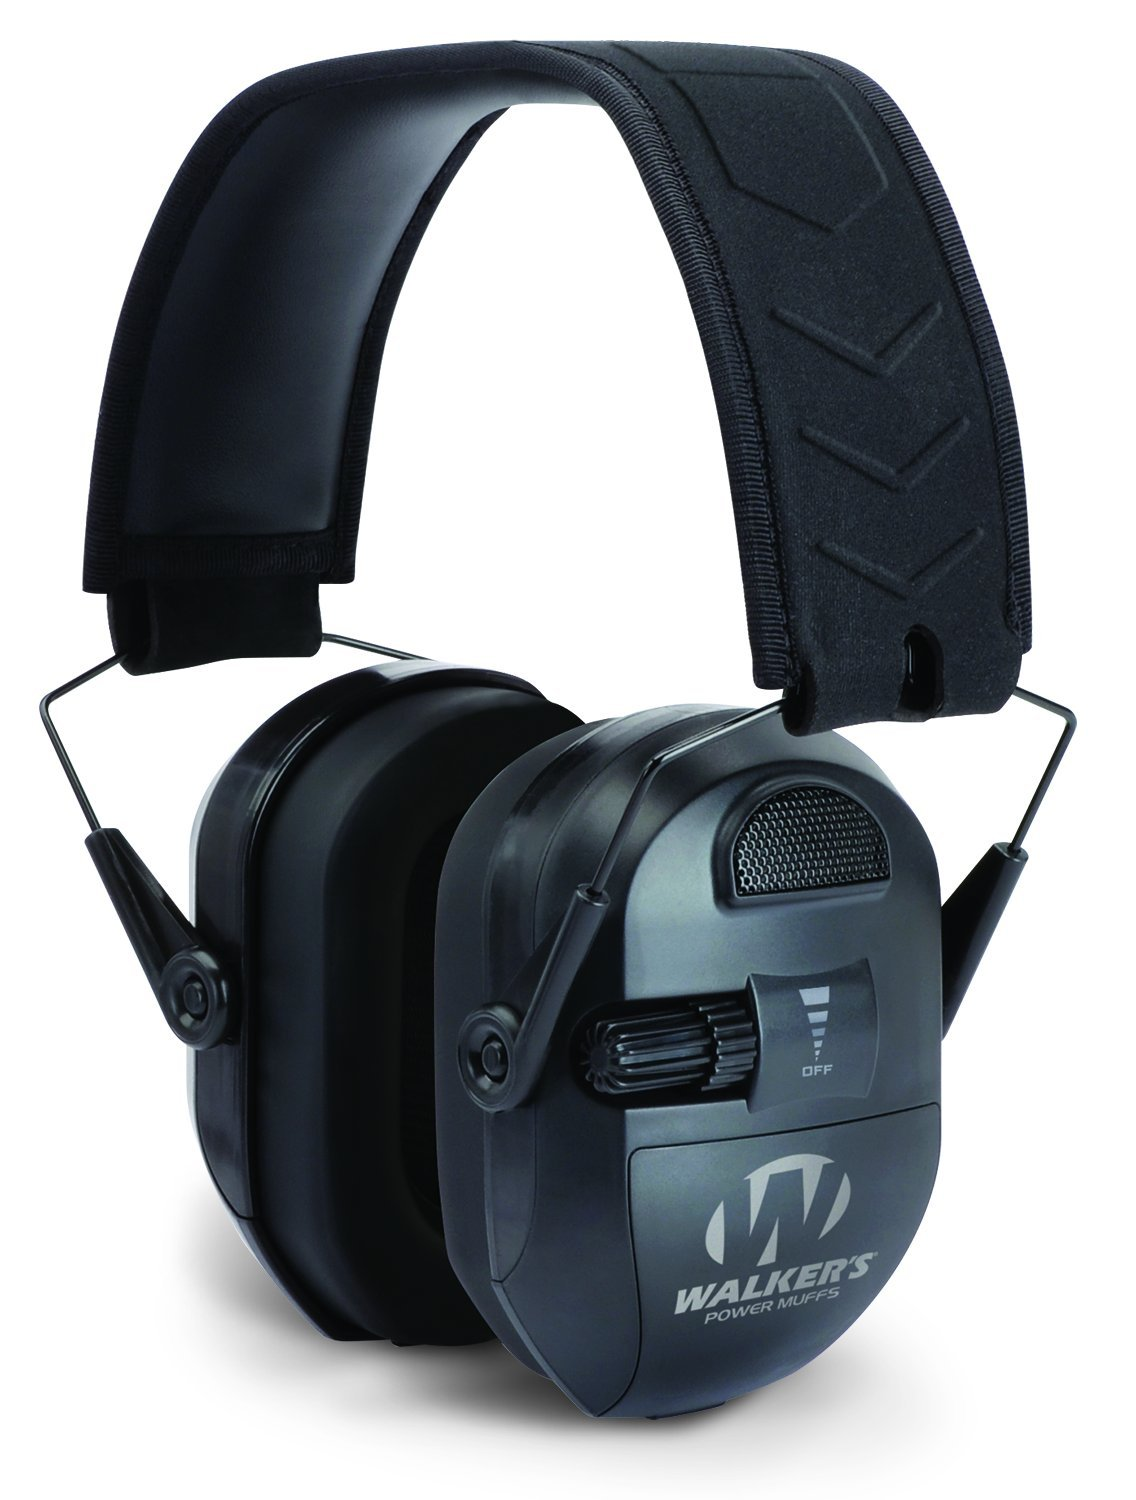 Walker's Ultimate Power Muff, Black by Walker's Game Ear